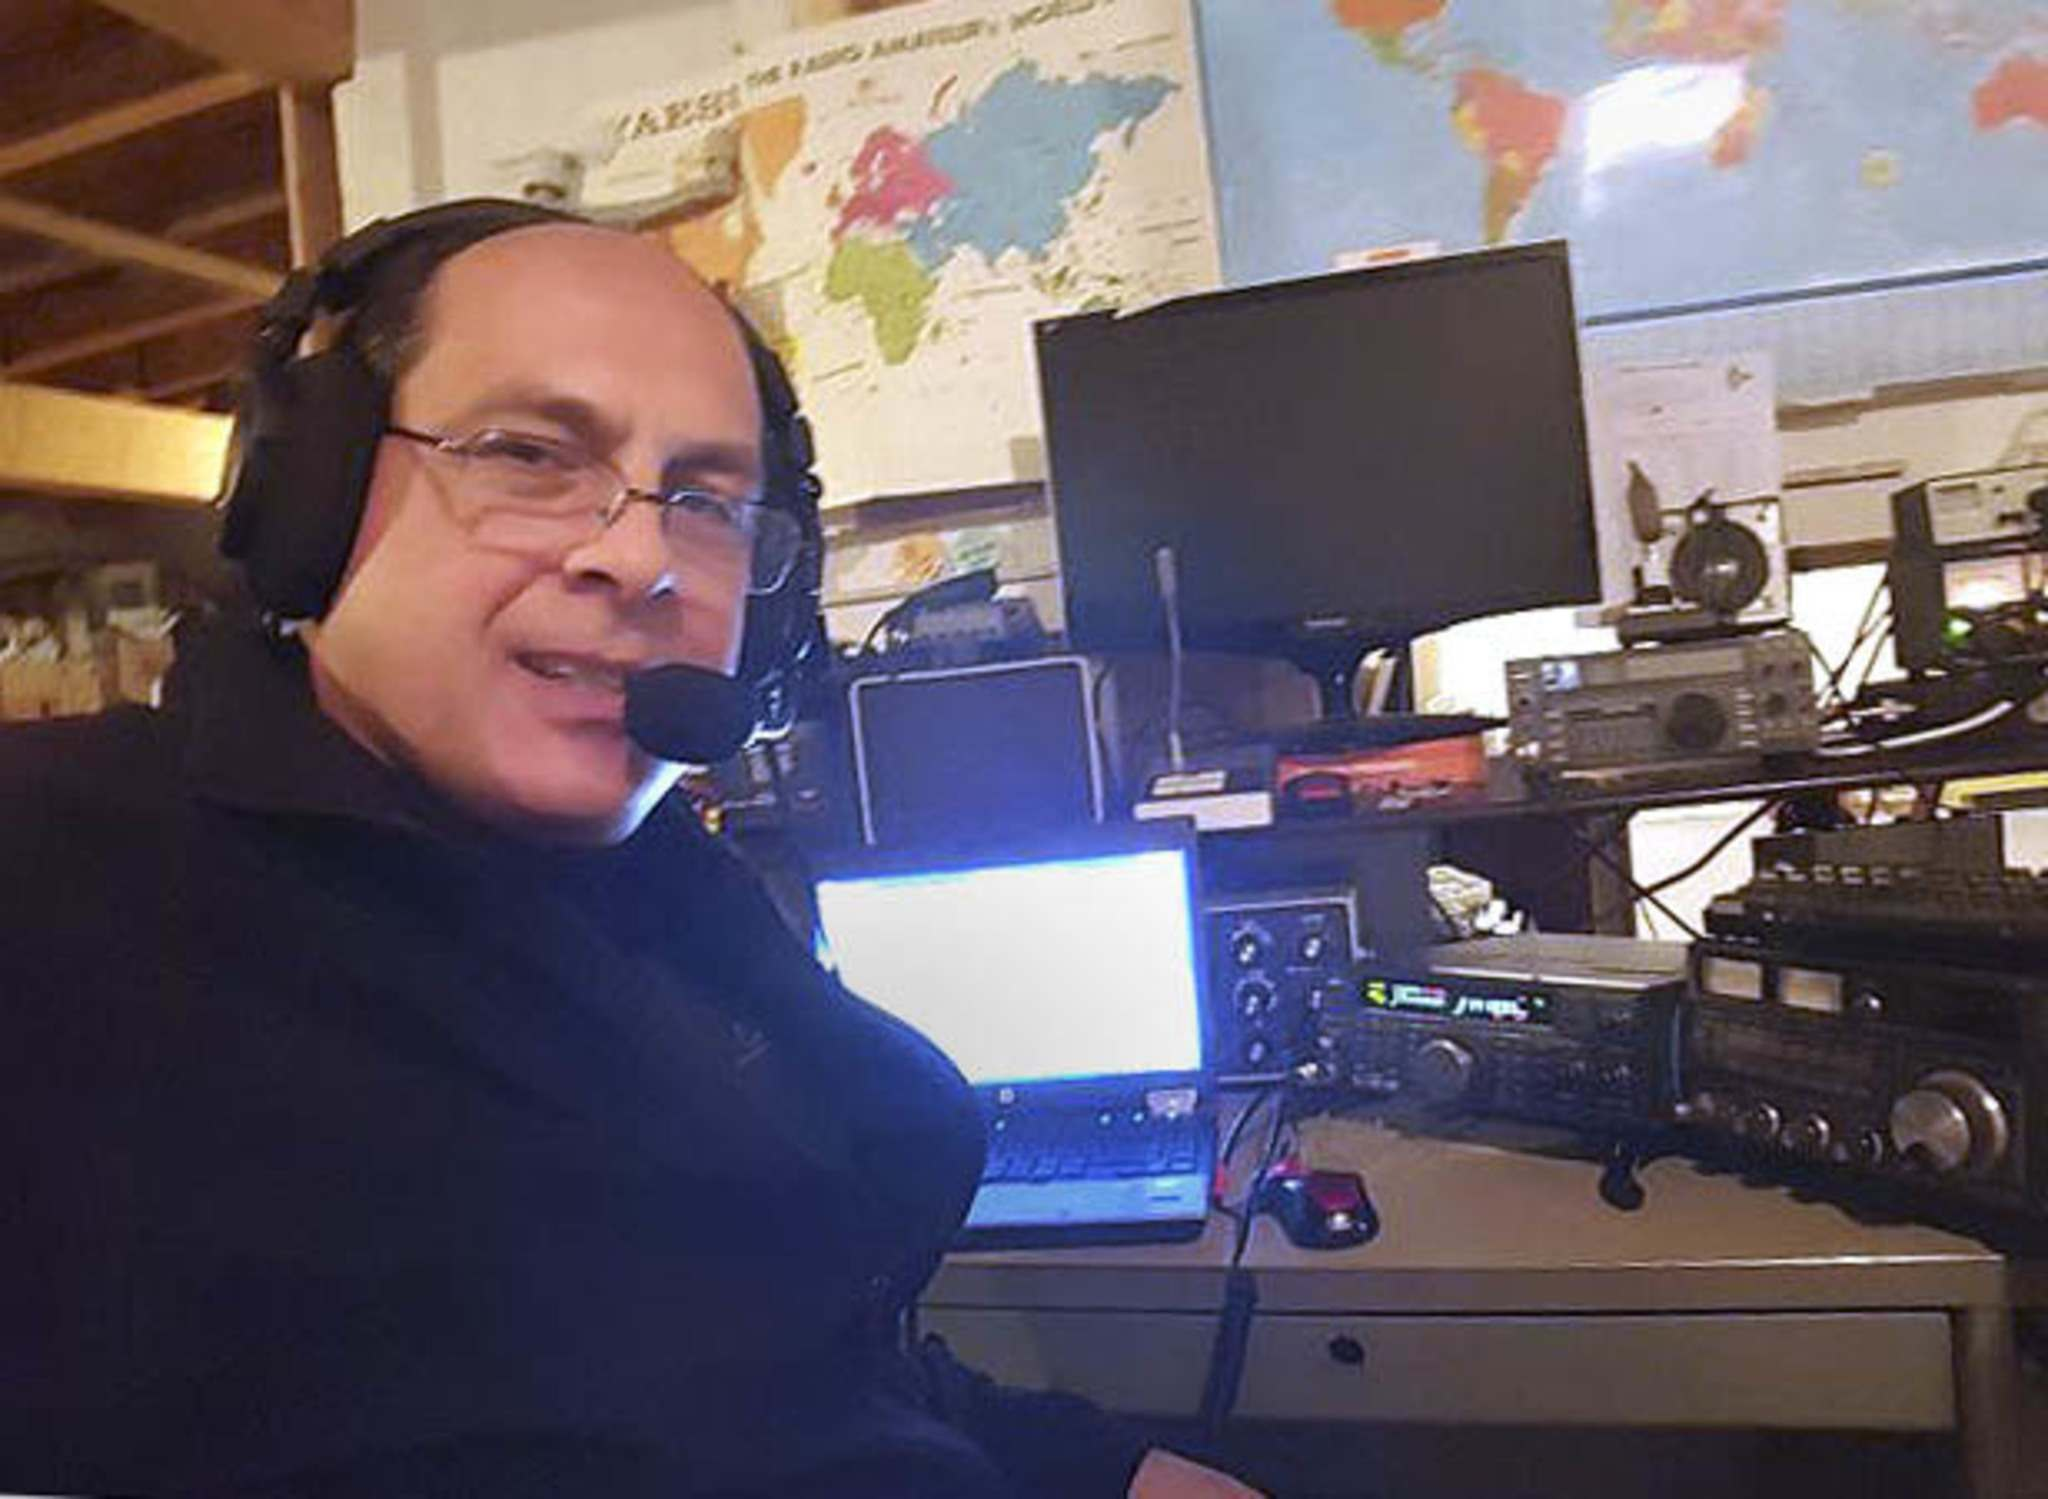 Dan Keizer has been a ham radio operator for nearly three decades. From his home in south Winnipeg, he can communicate around the world.